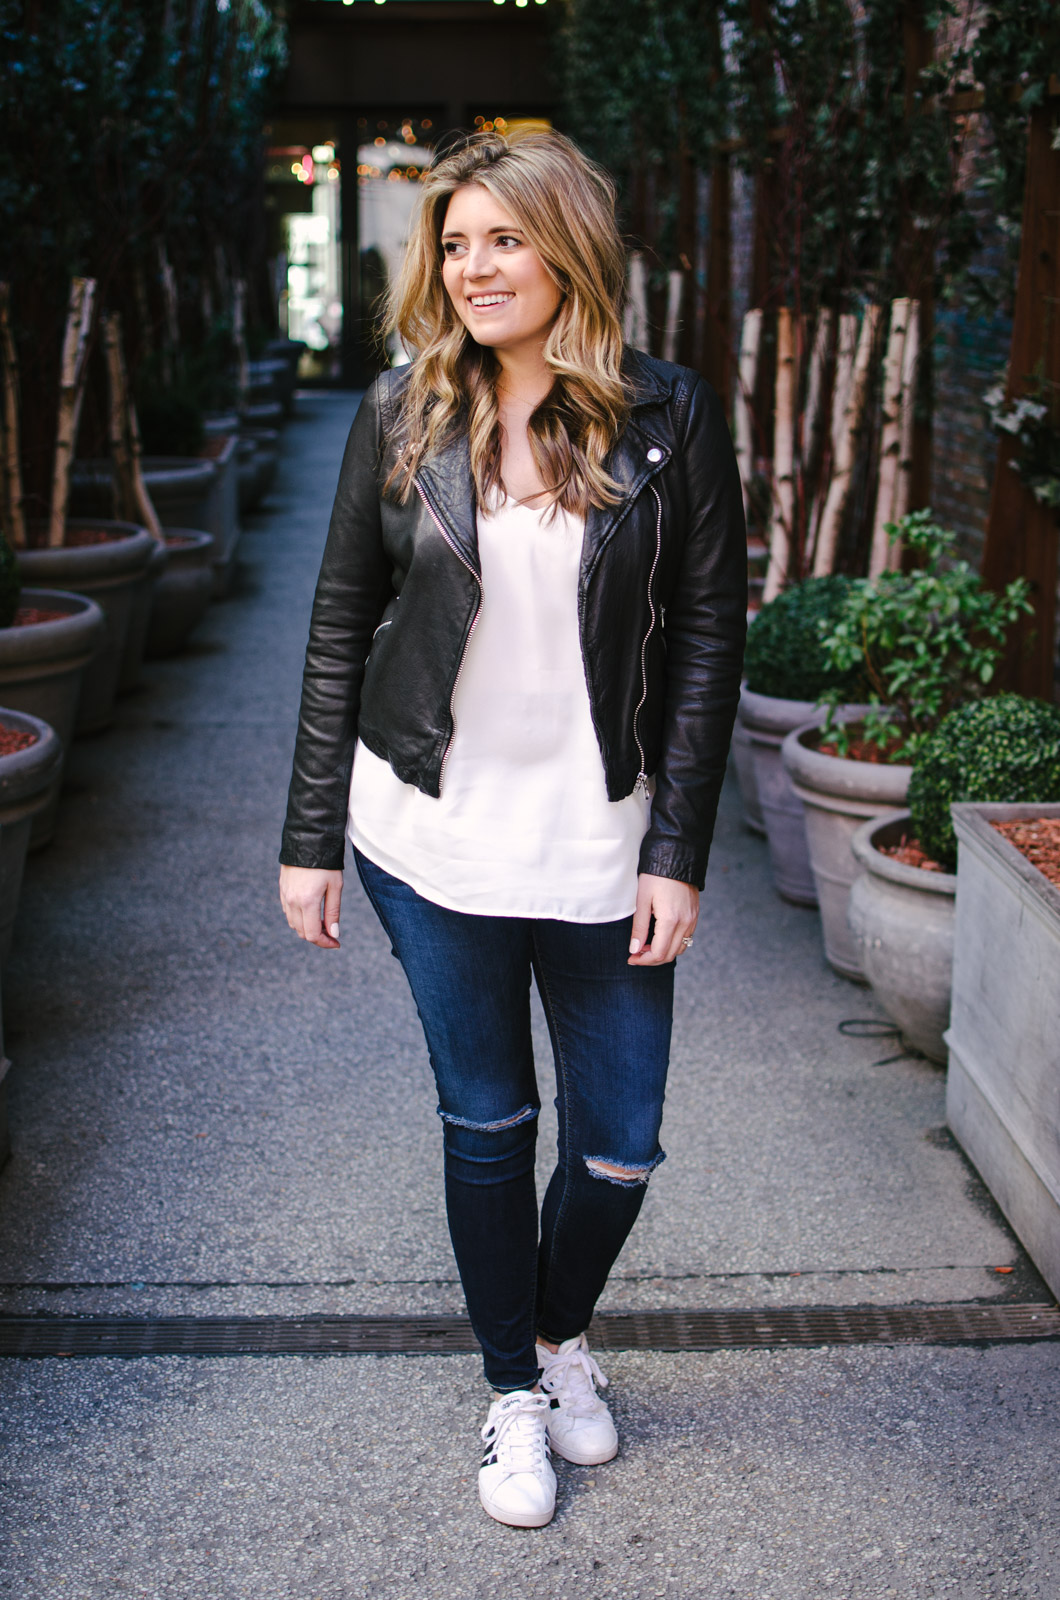 cami and a leather jacket outfit - maternity leather jacket outfit | bylaurenm.com